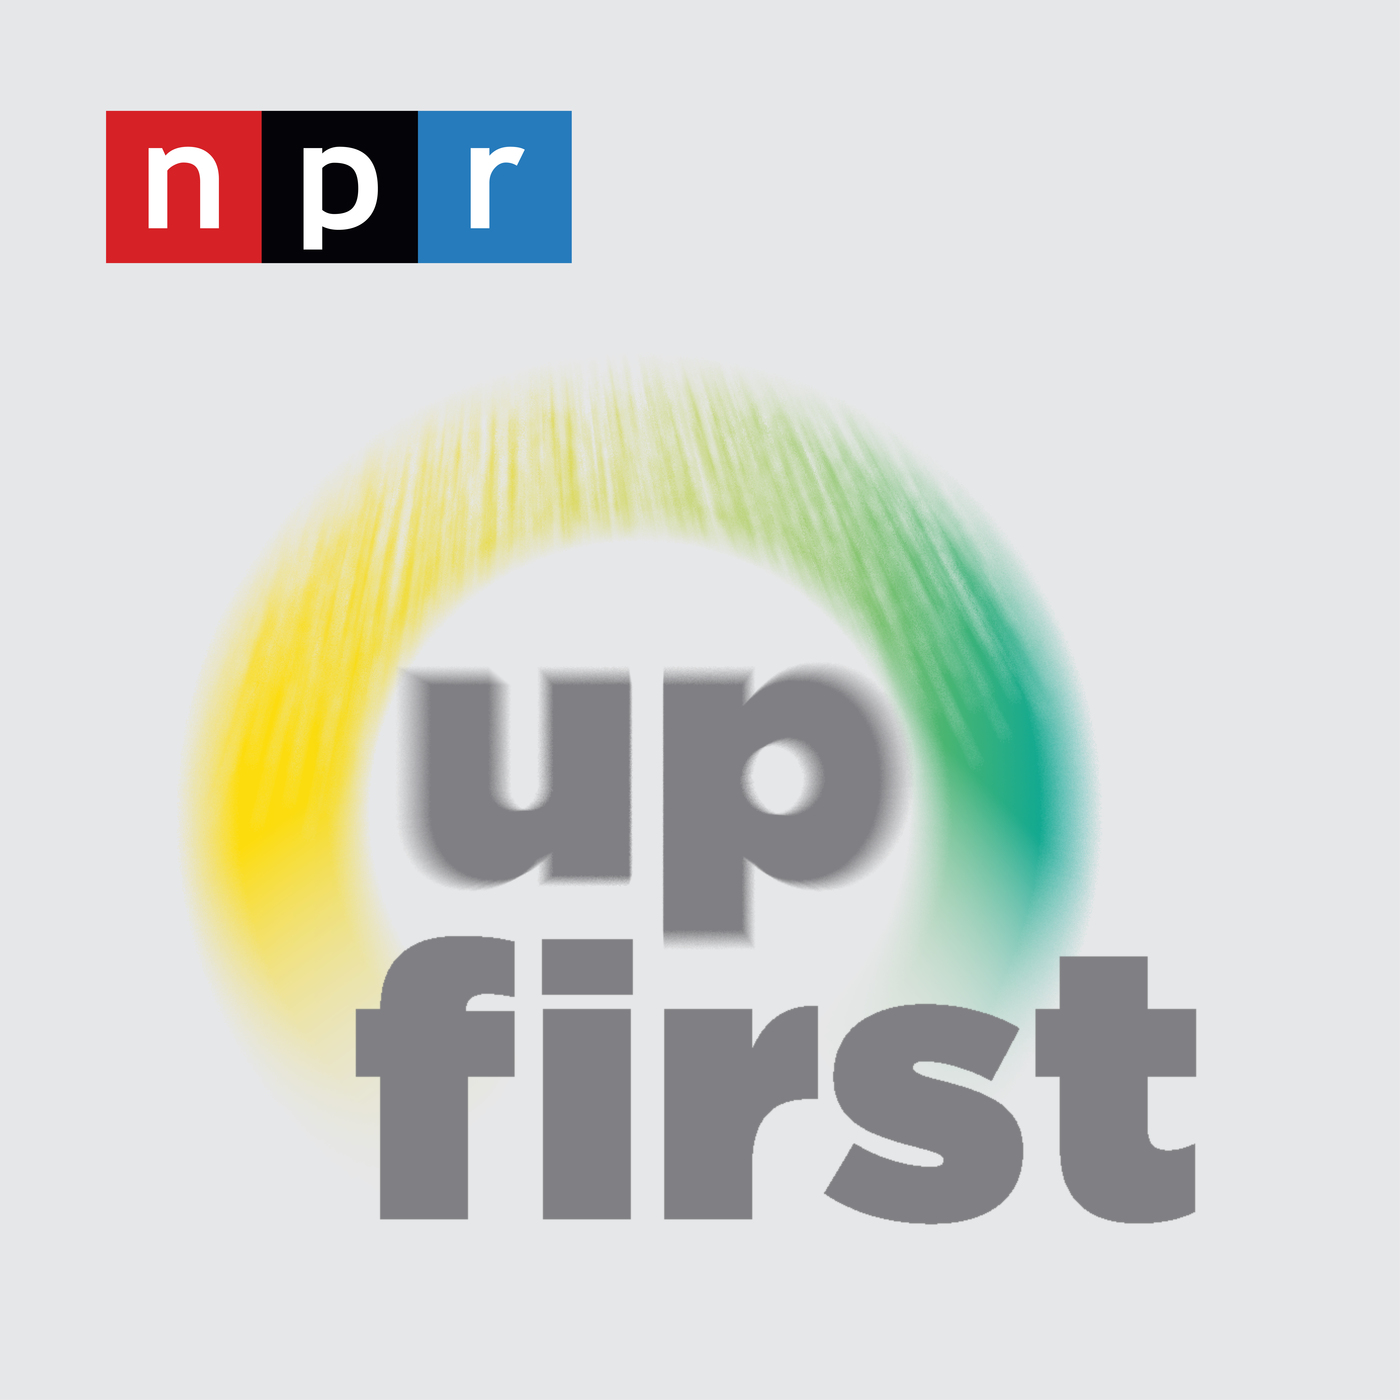 Up First - This is a great unbiased podcast that is short, sweet, and to the point on today's news. It helps busy people stay up-to-date and be aware of current events.